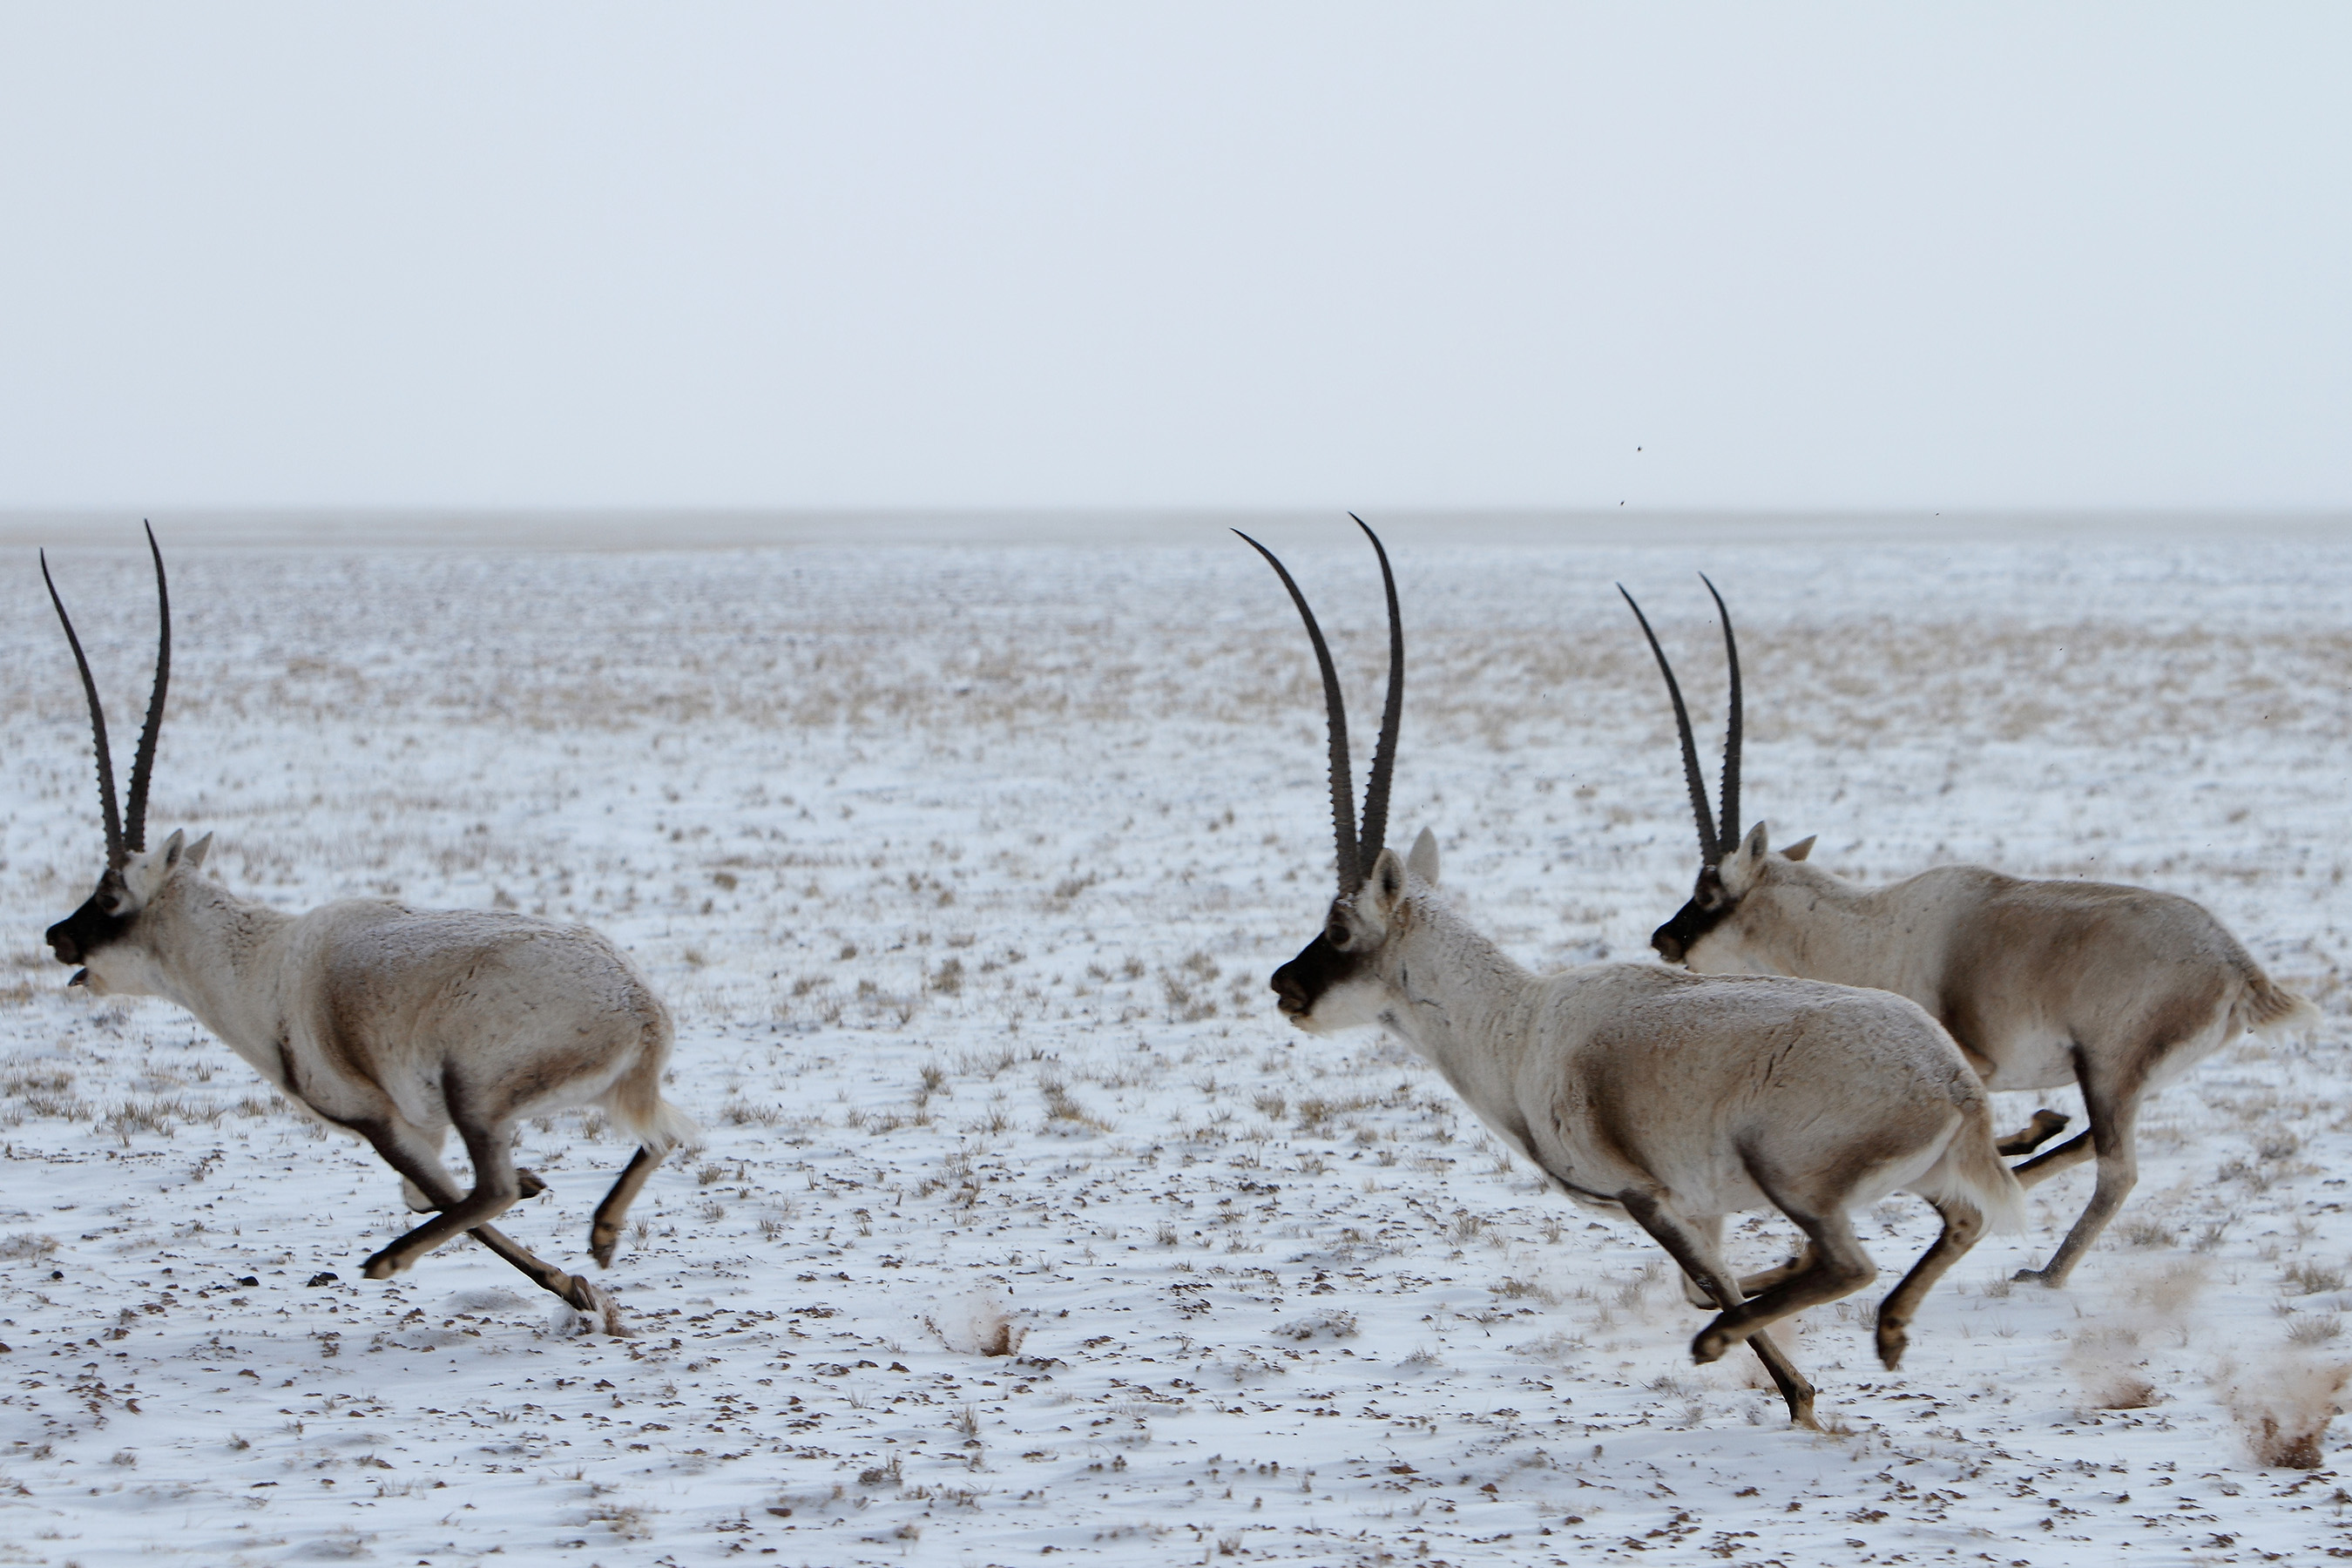 The High altitude plateau valleys in Sanjiangyuan area have been an ideal habitat for rare wildlife species like Tibetan antelope.